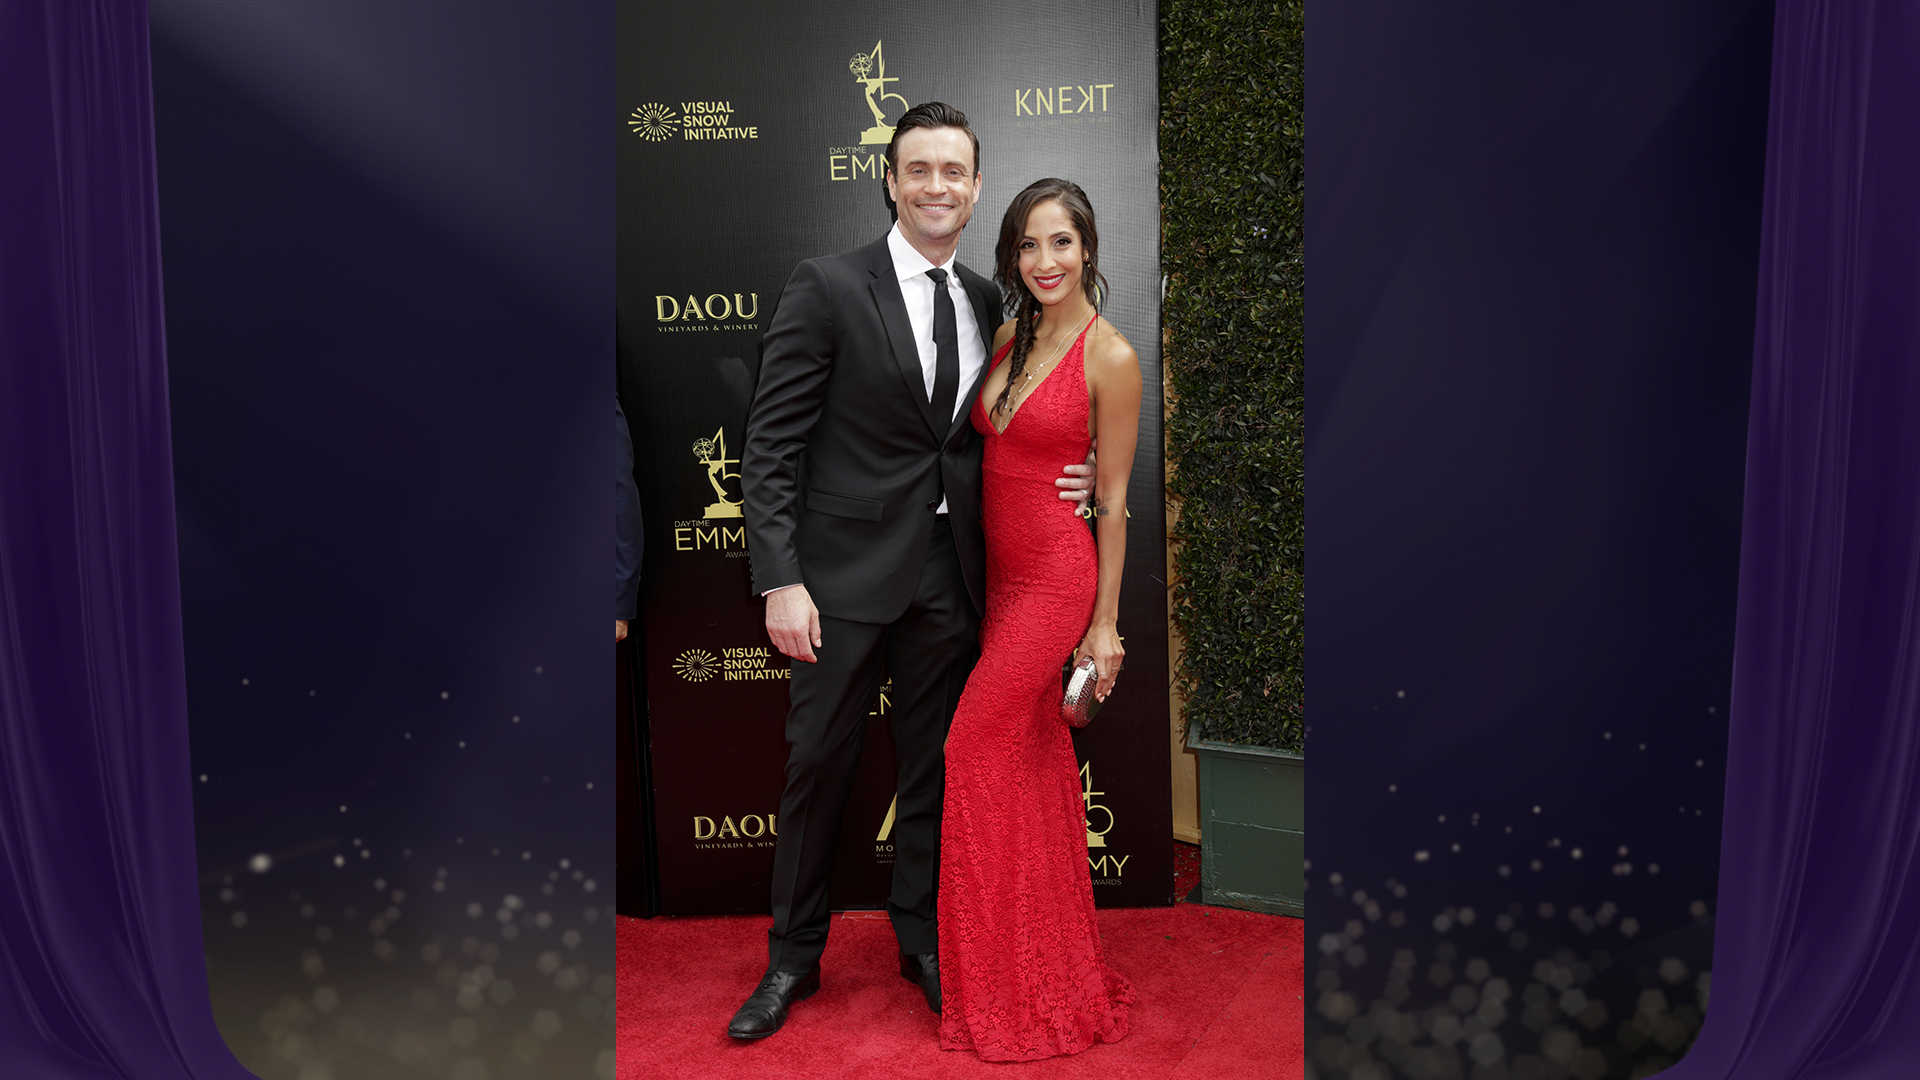 Daniel Goddard from The Young and the Restless stops to pose with costar Christel Khalil before taking their seats for the main event.